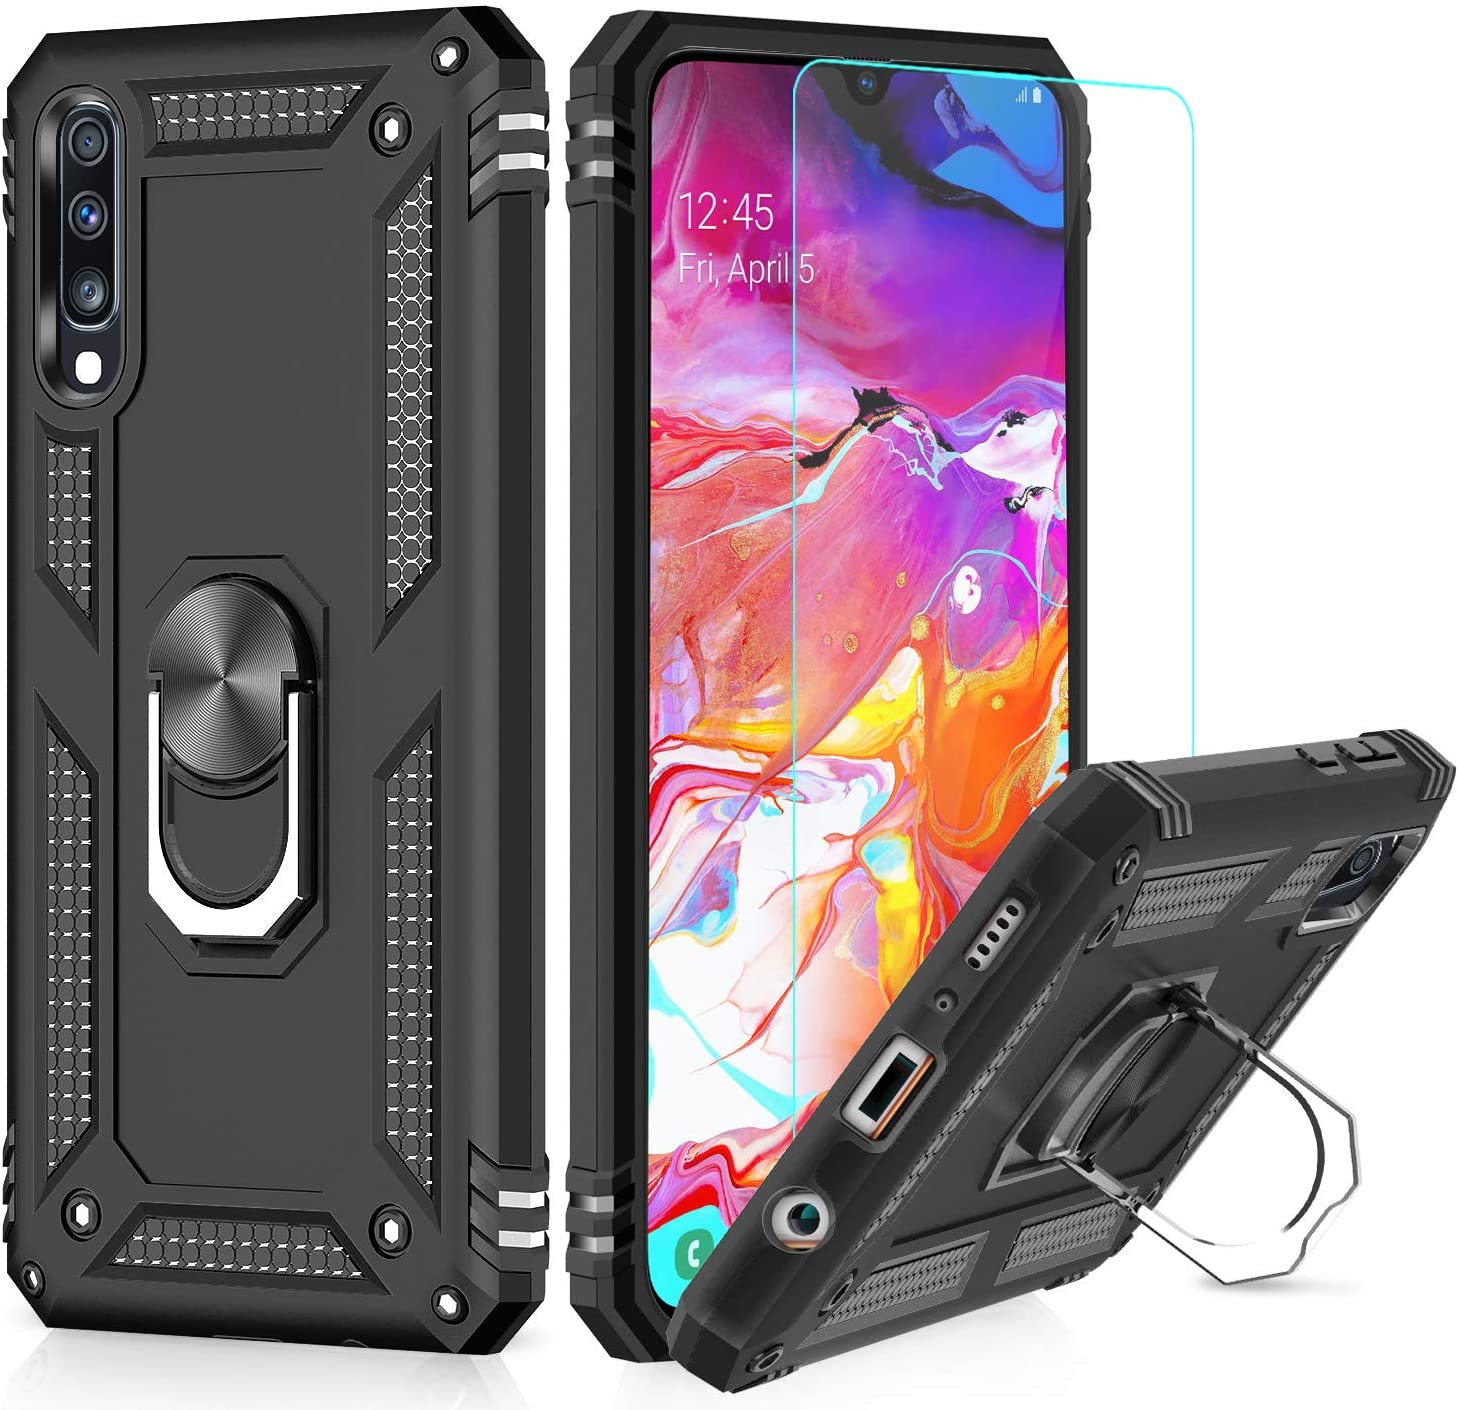 Amazon Com Leyi Samsung Galaxy A50 A50s A30s Case With Hd Screen Protector Military Grade Magnetic Car Ring Holder Mount Kickstand Defender Protective Cover Phone Case For Samsung A50 A50s A30s Black Electronics